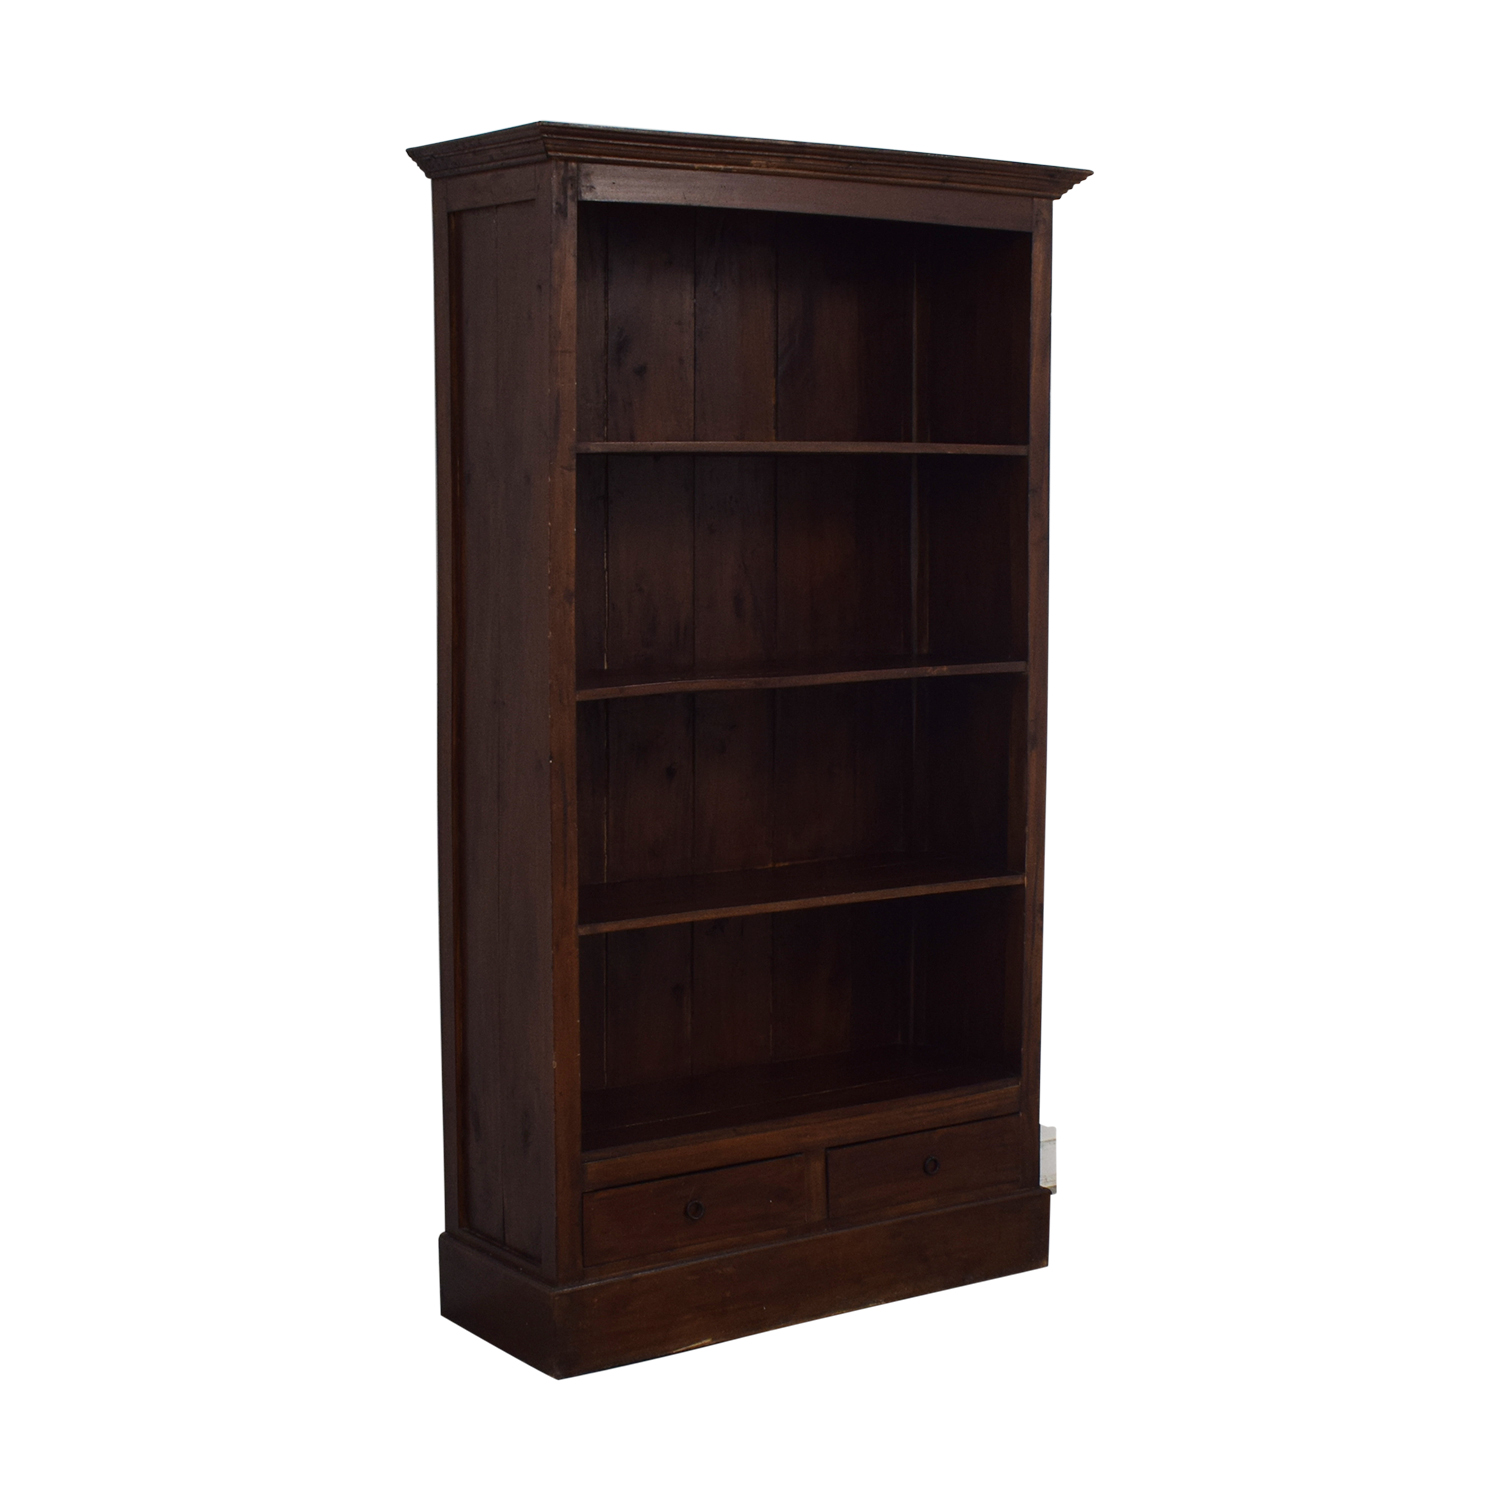 Two Drawer Wood Bookcase price